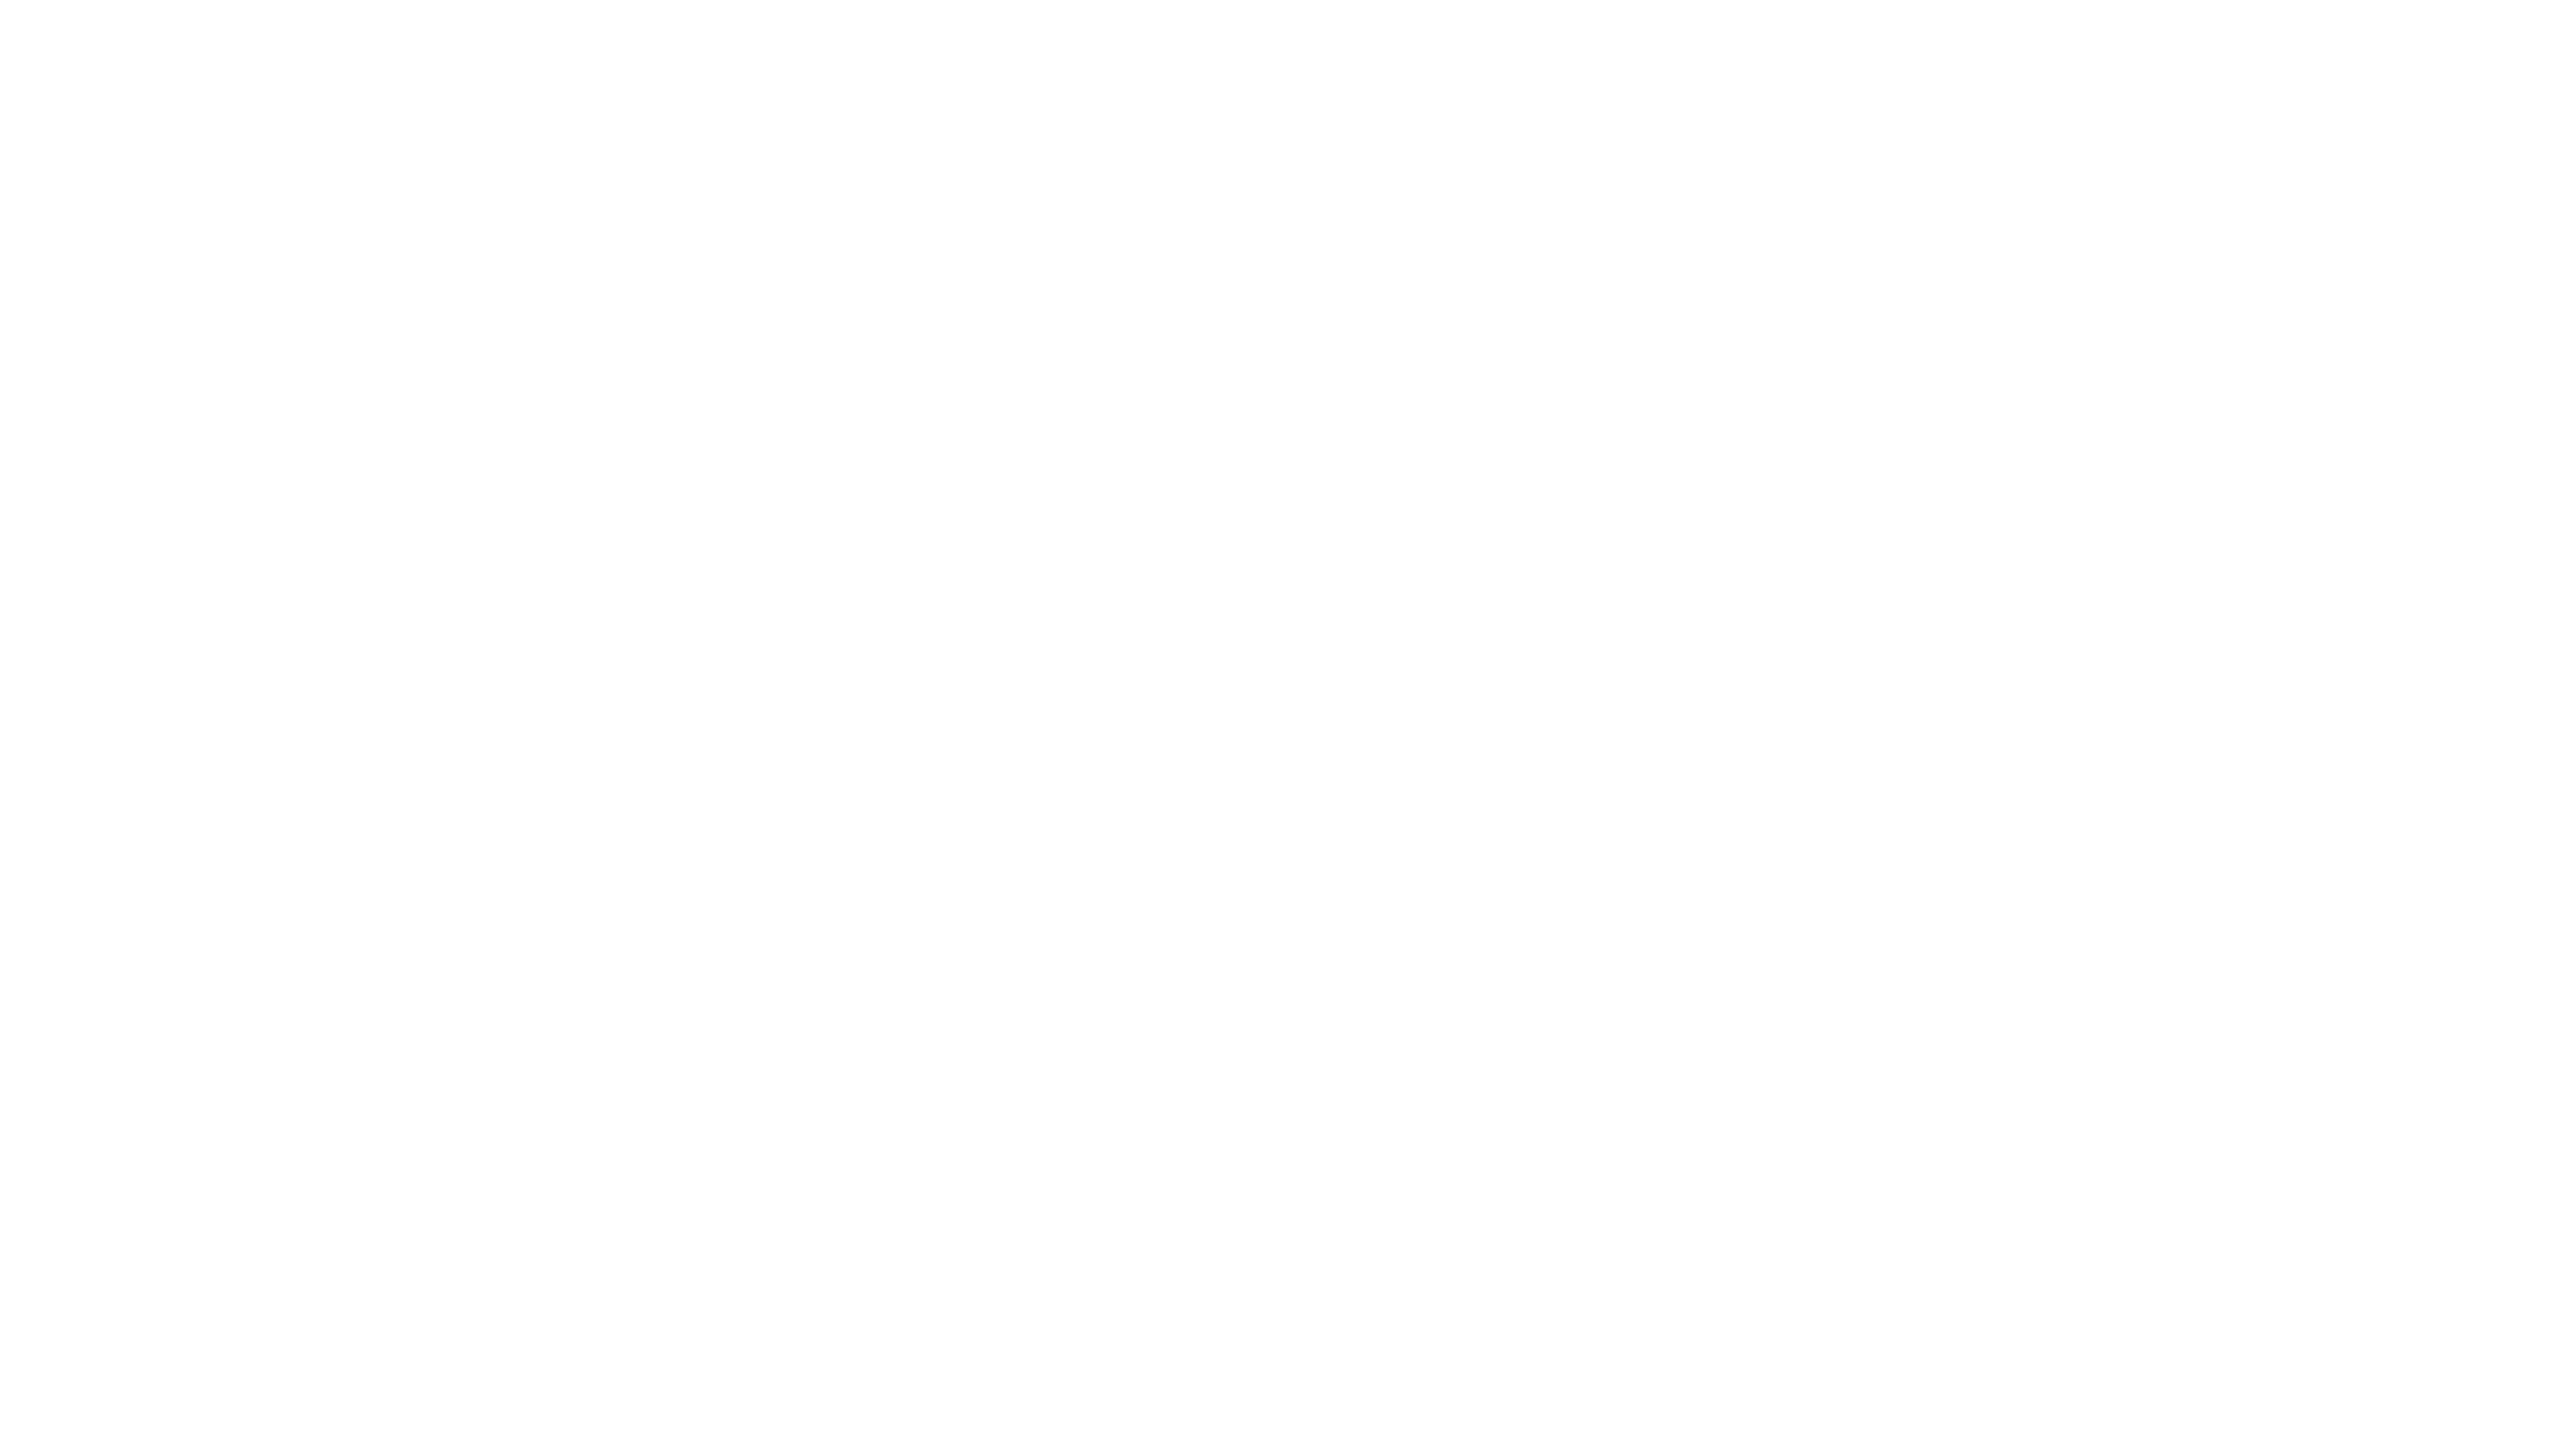 Hear logo